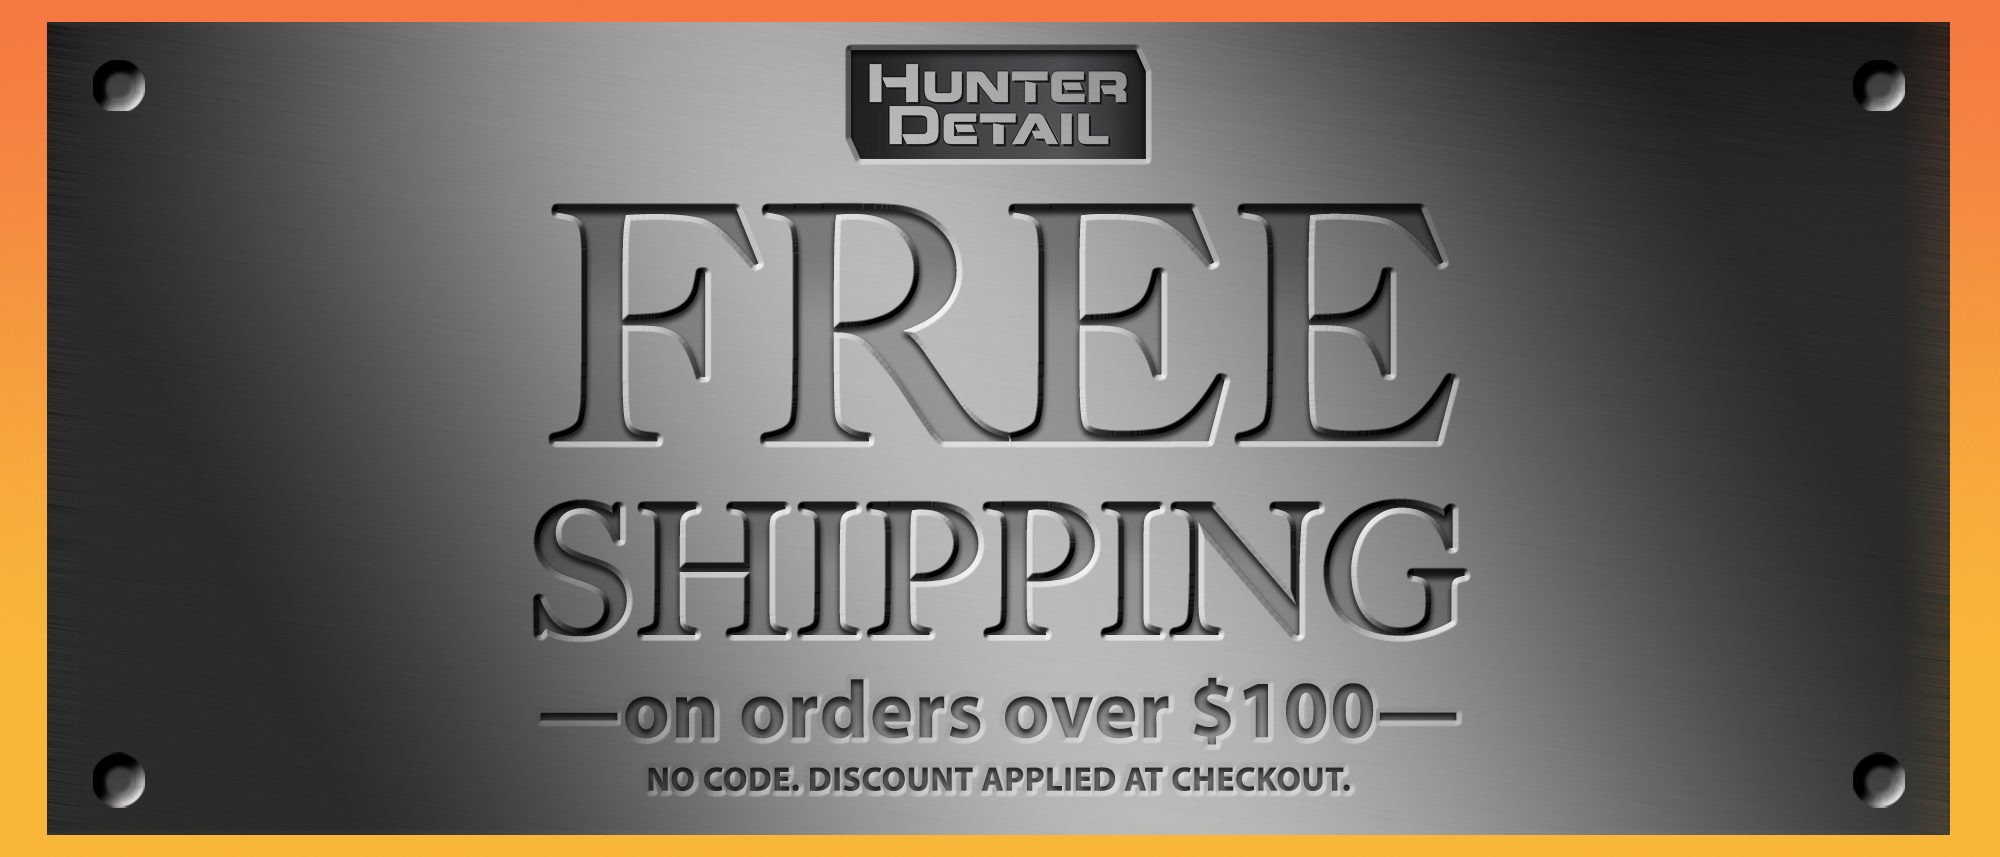 Hunter Detail Free Shipping Offer